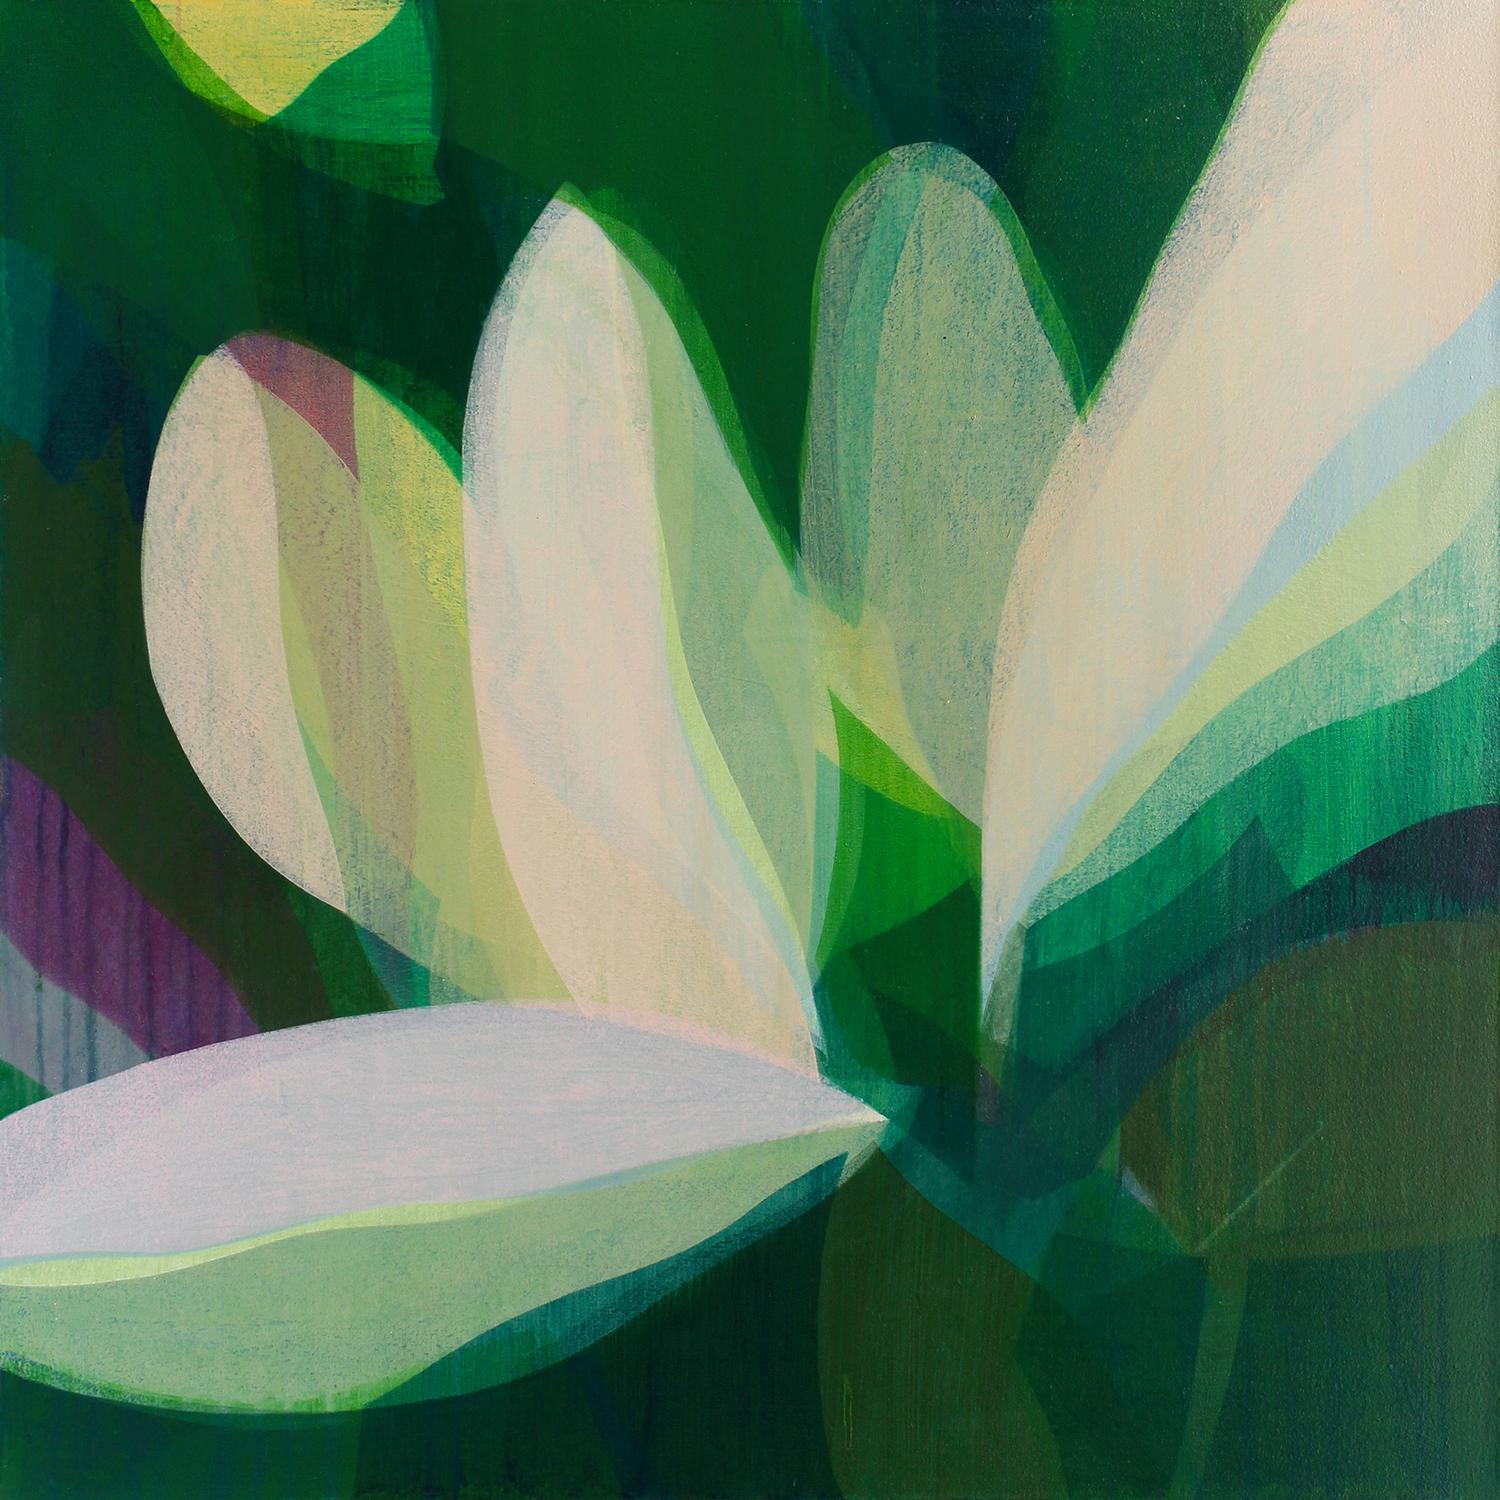 """(Magnolia) Emerald"" - Colorful Abstract Botanical Painting - Frankenthaler"